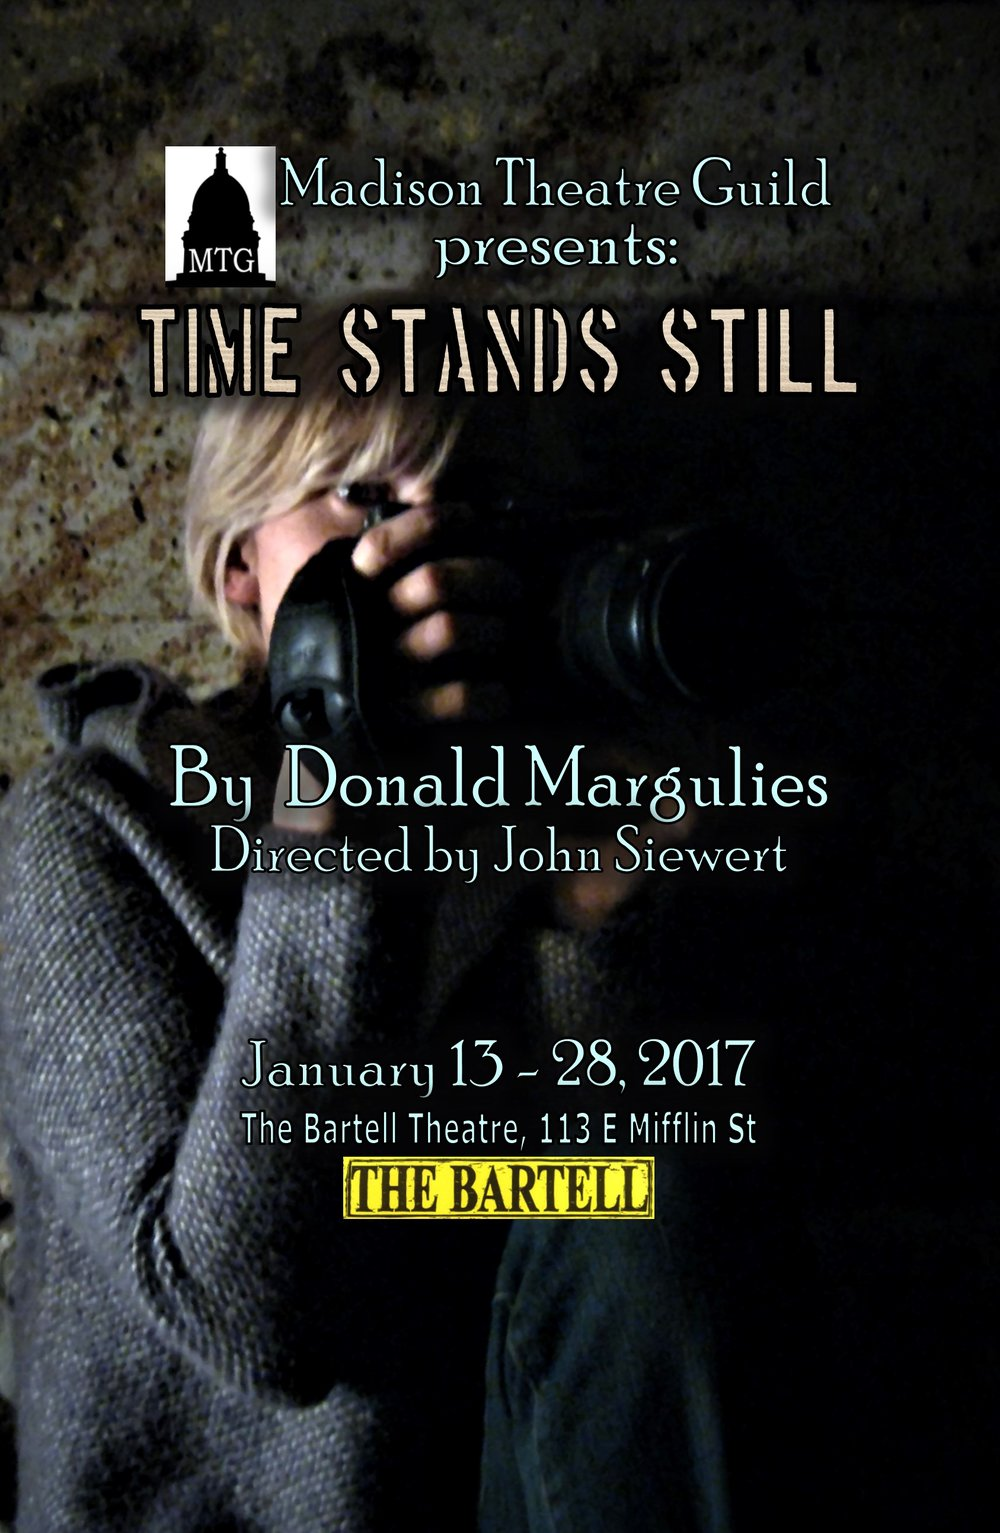 time+stands+still+program+cover+1.jpg